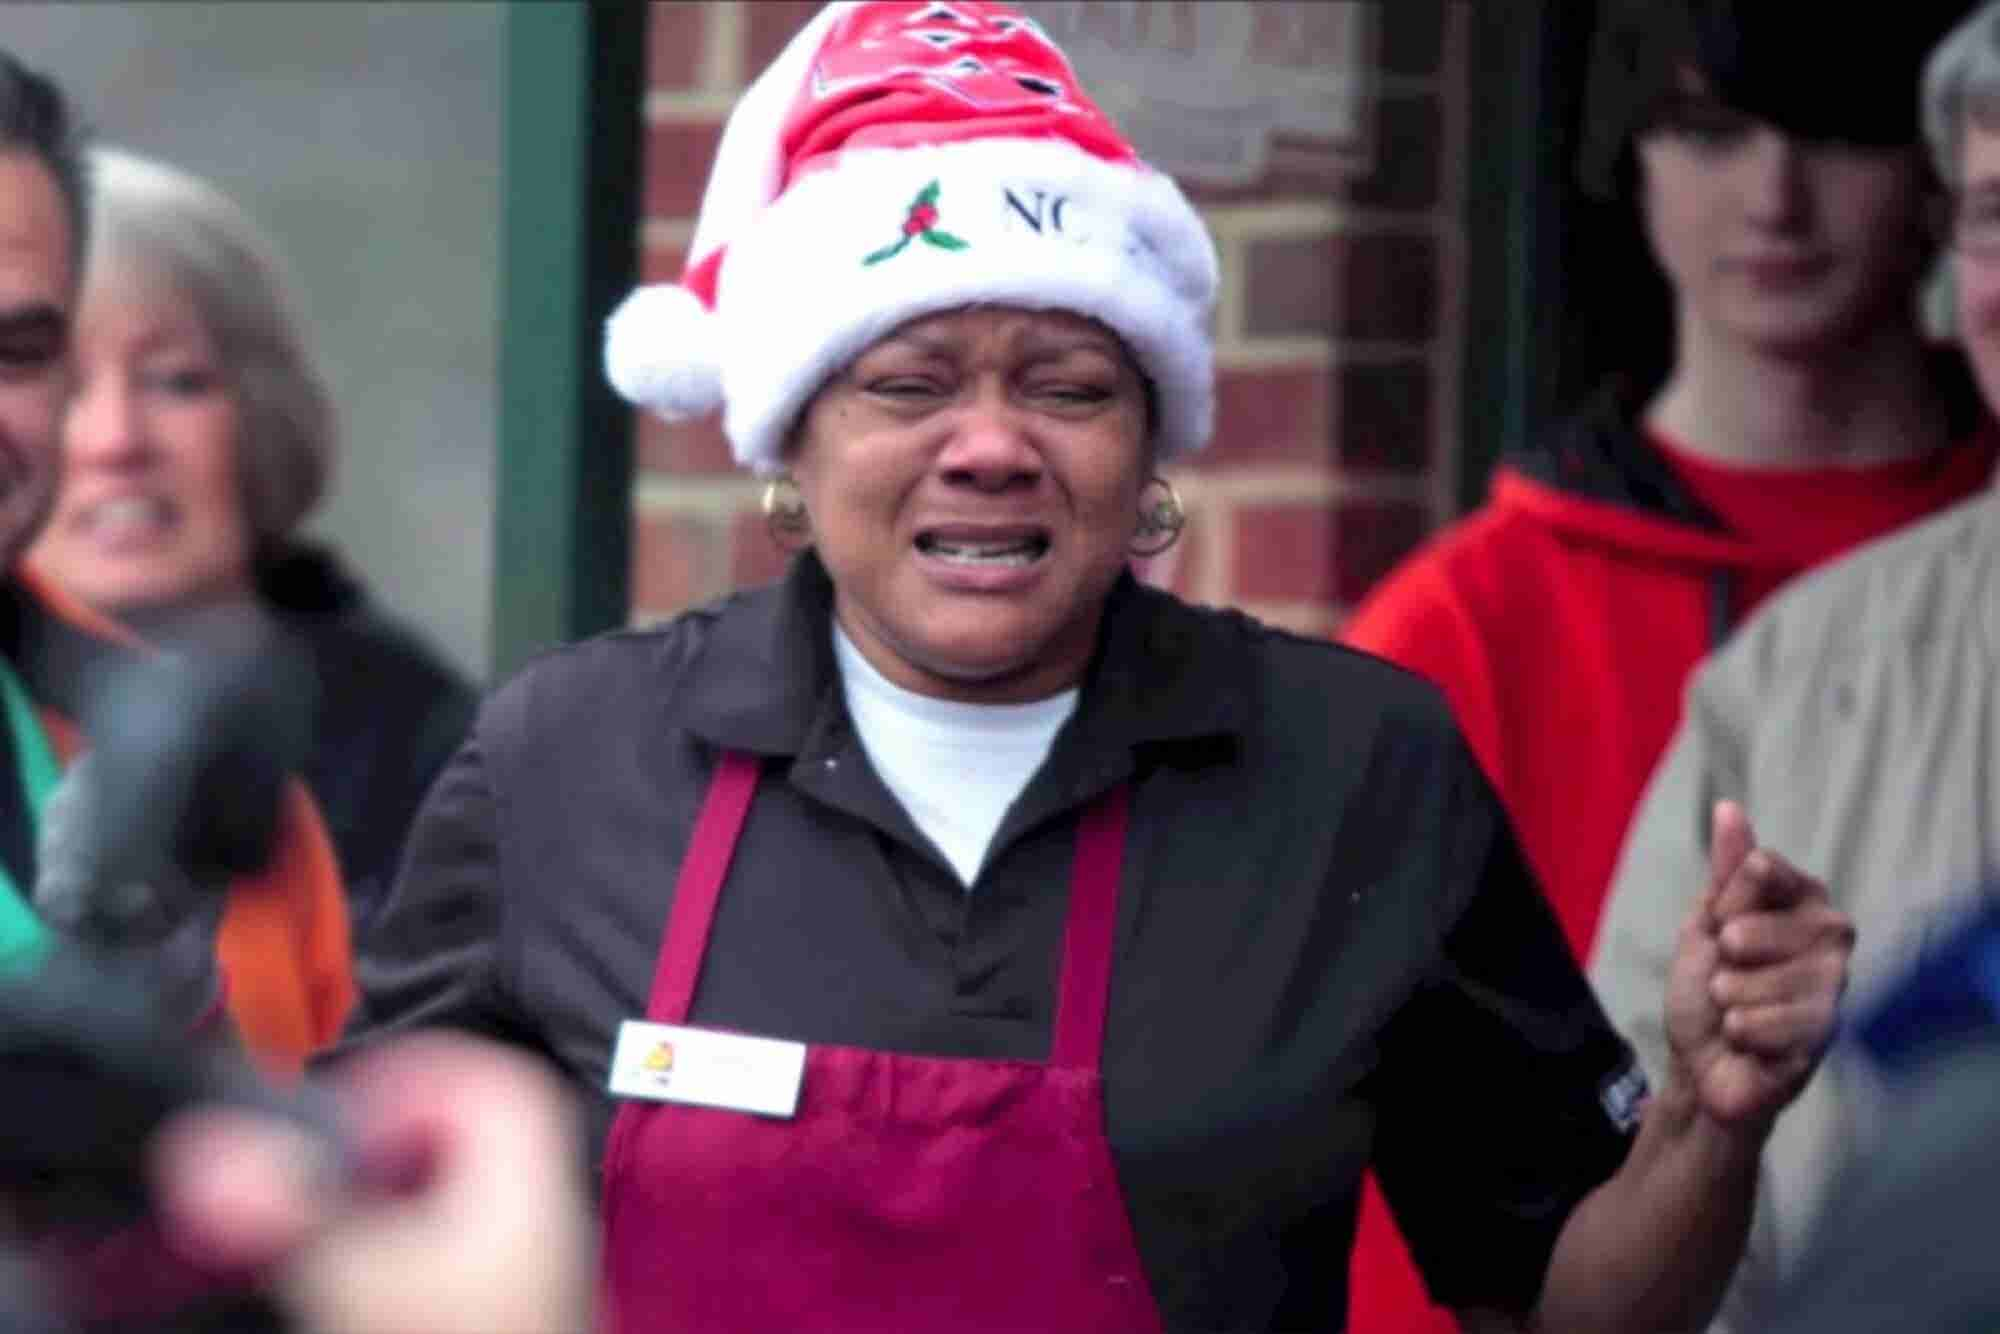 Watch: Customers Surprise Beloved Bagel Shop Worker With a Car